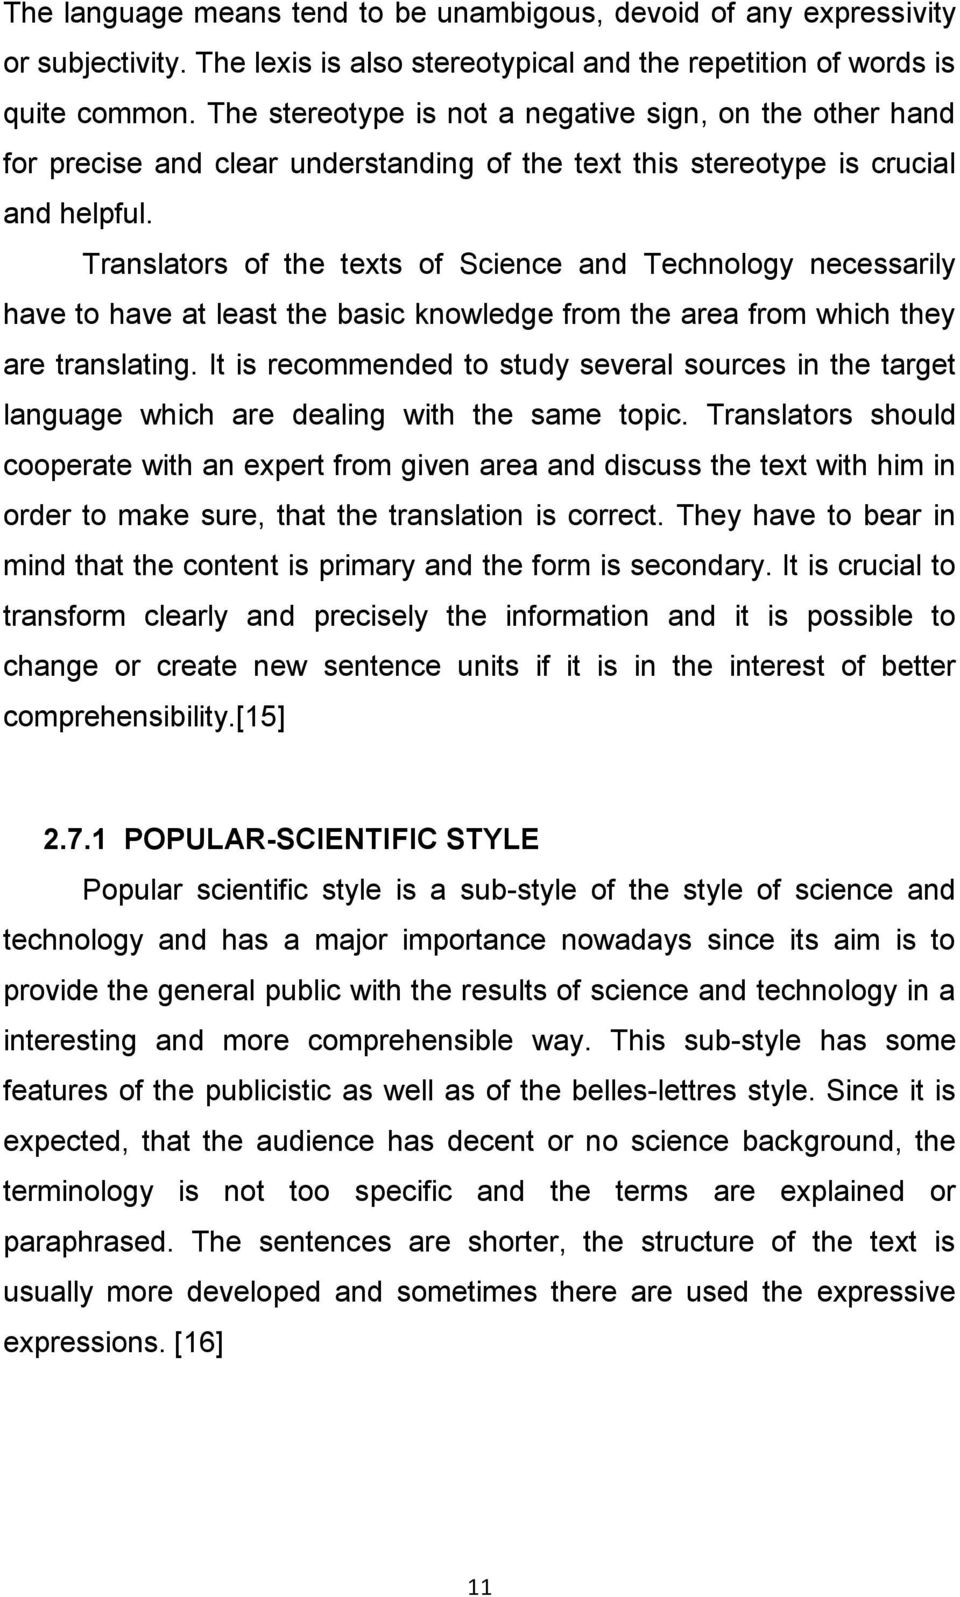 Translators of the texts of Science and Technology necessarily have to have at least the basic knowledge from the area from which they are translating.